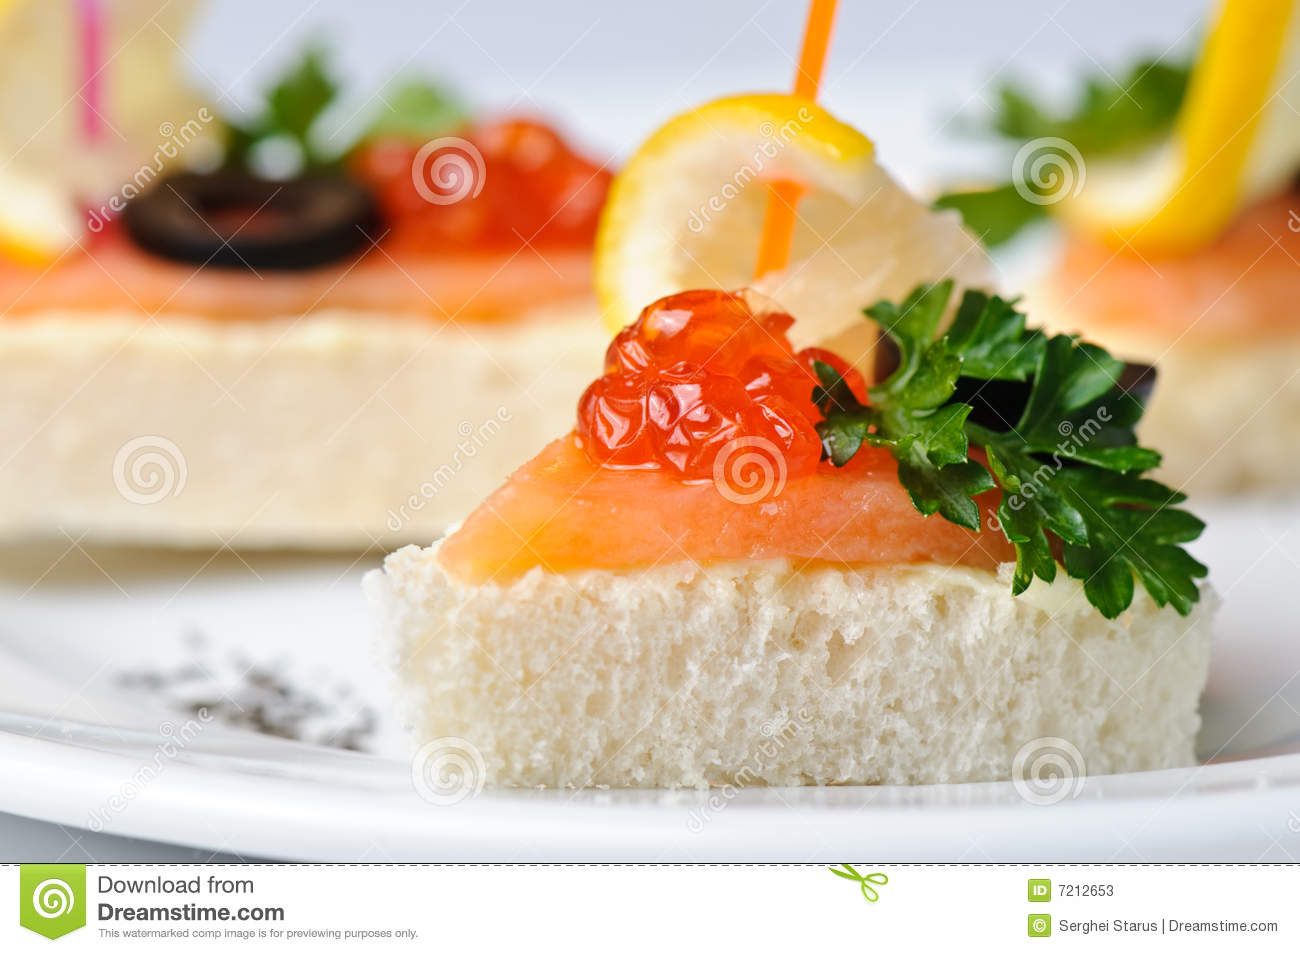 Canape with red caviar and smoked salmon stock photos for Canape with caviar